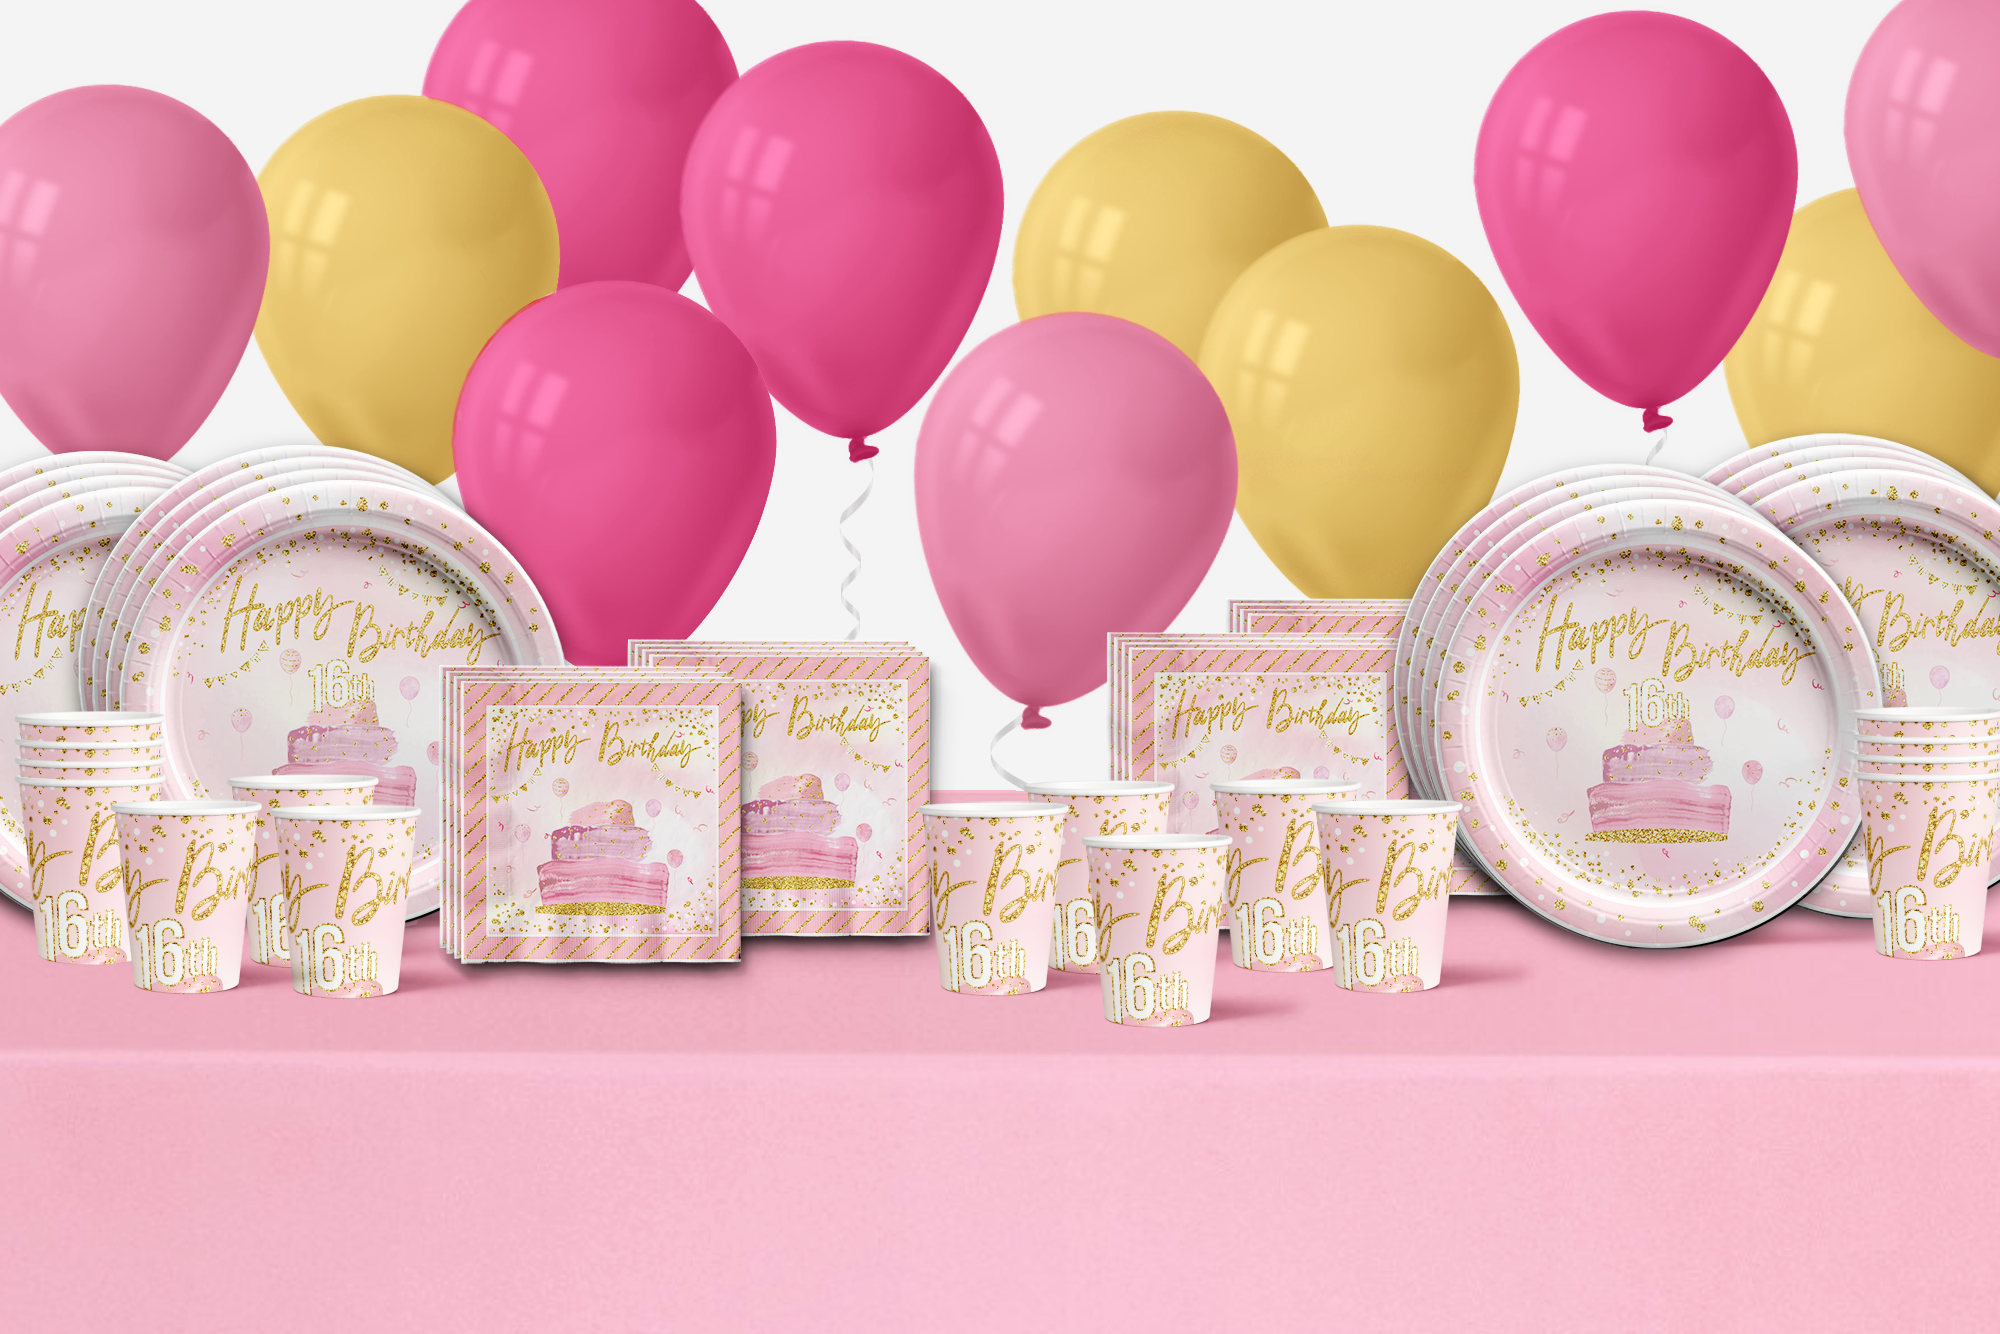 Sweet 16th Pink and Gold Birthday Party Tableware for 16 Guests - BirthdayGalore.com